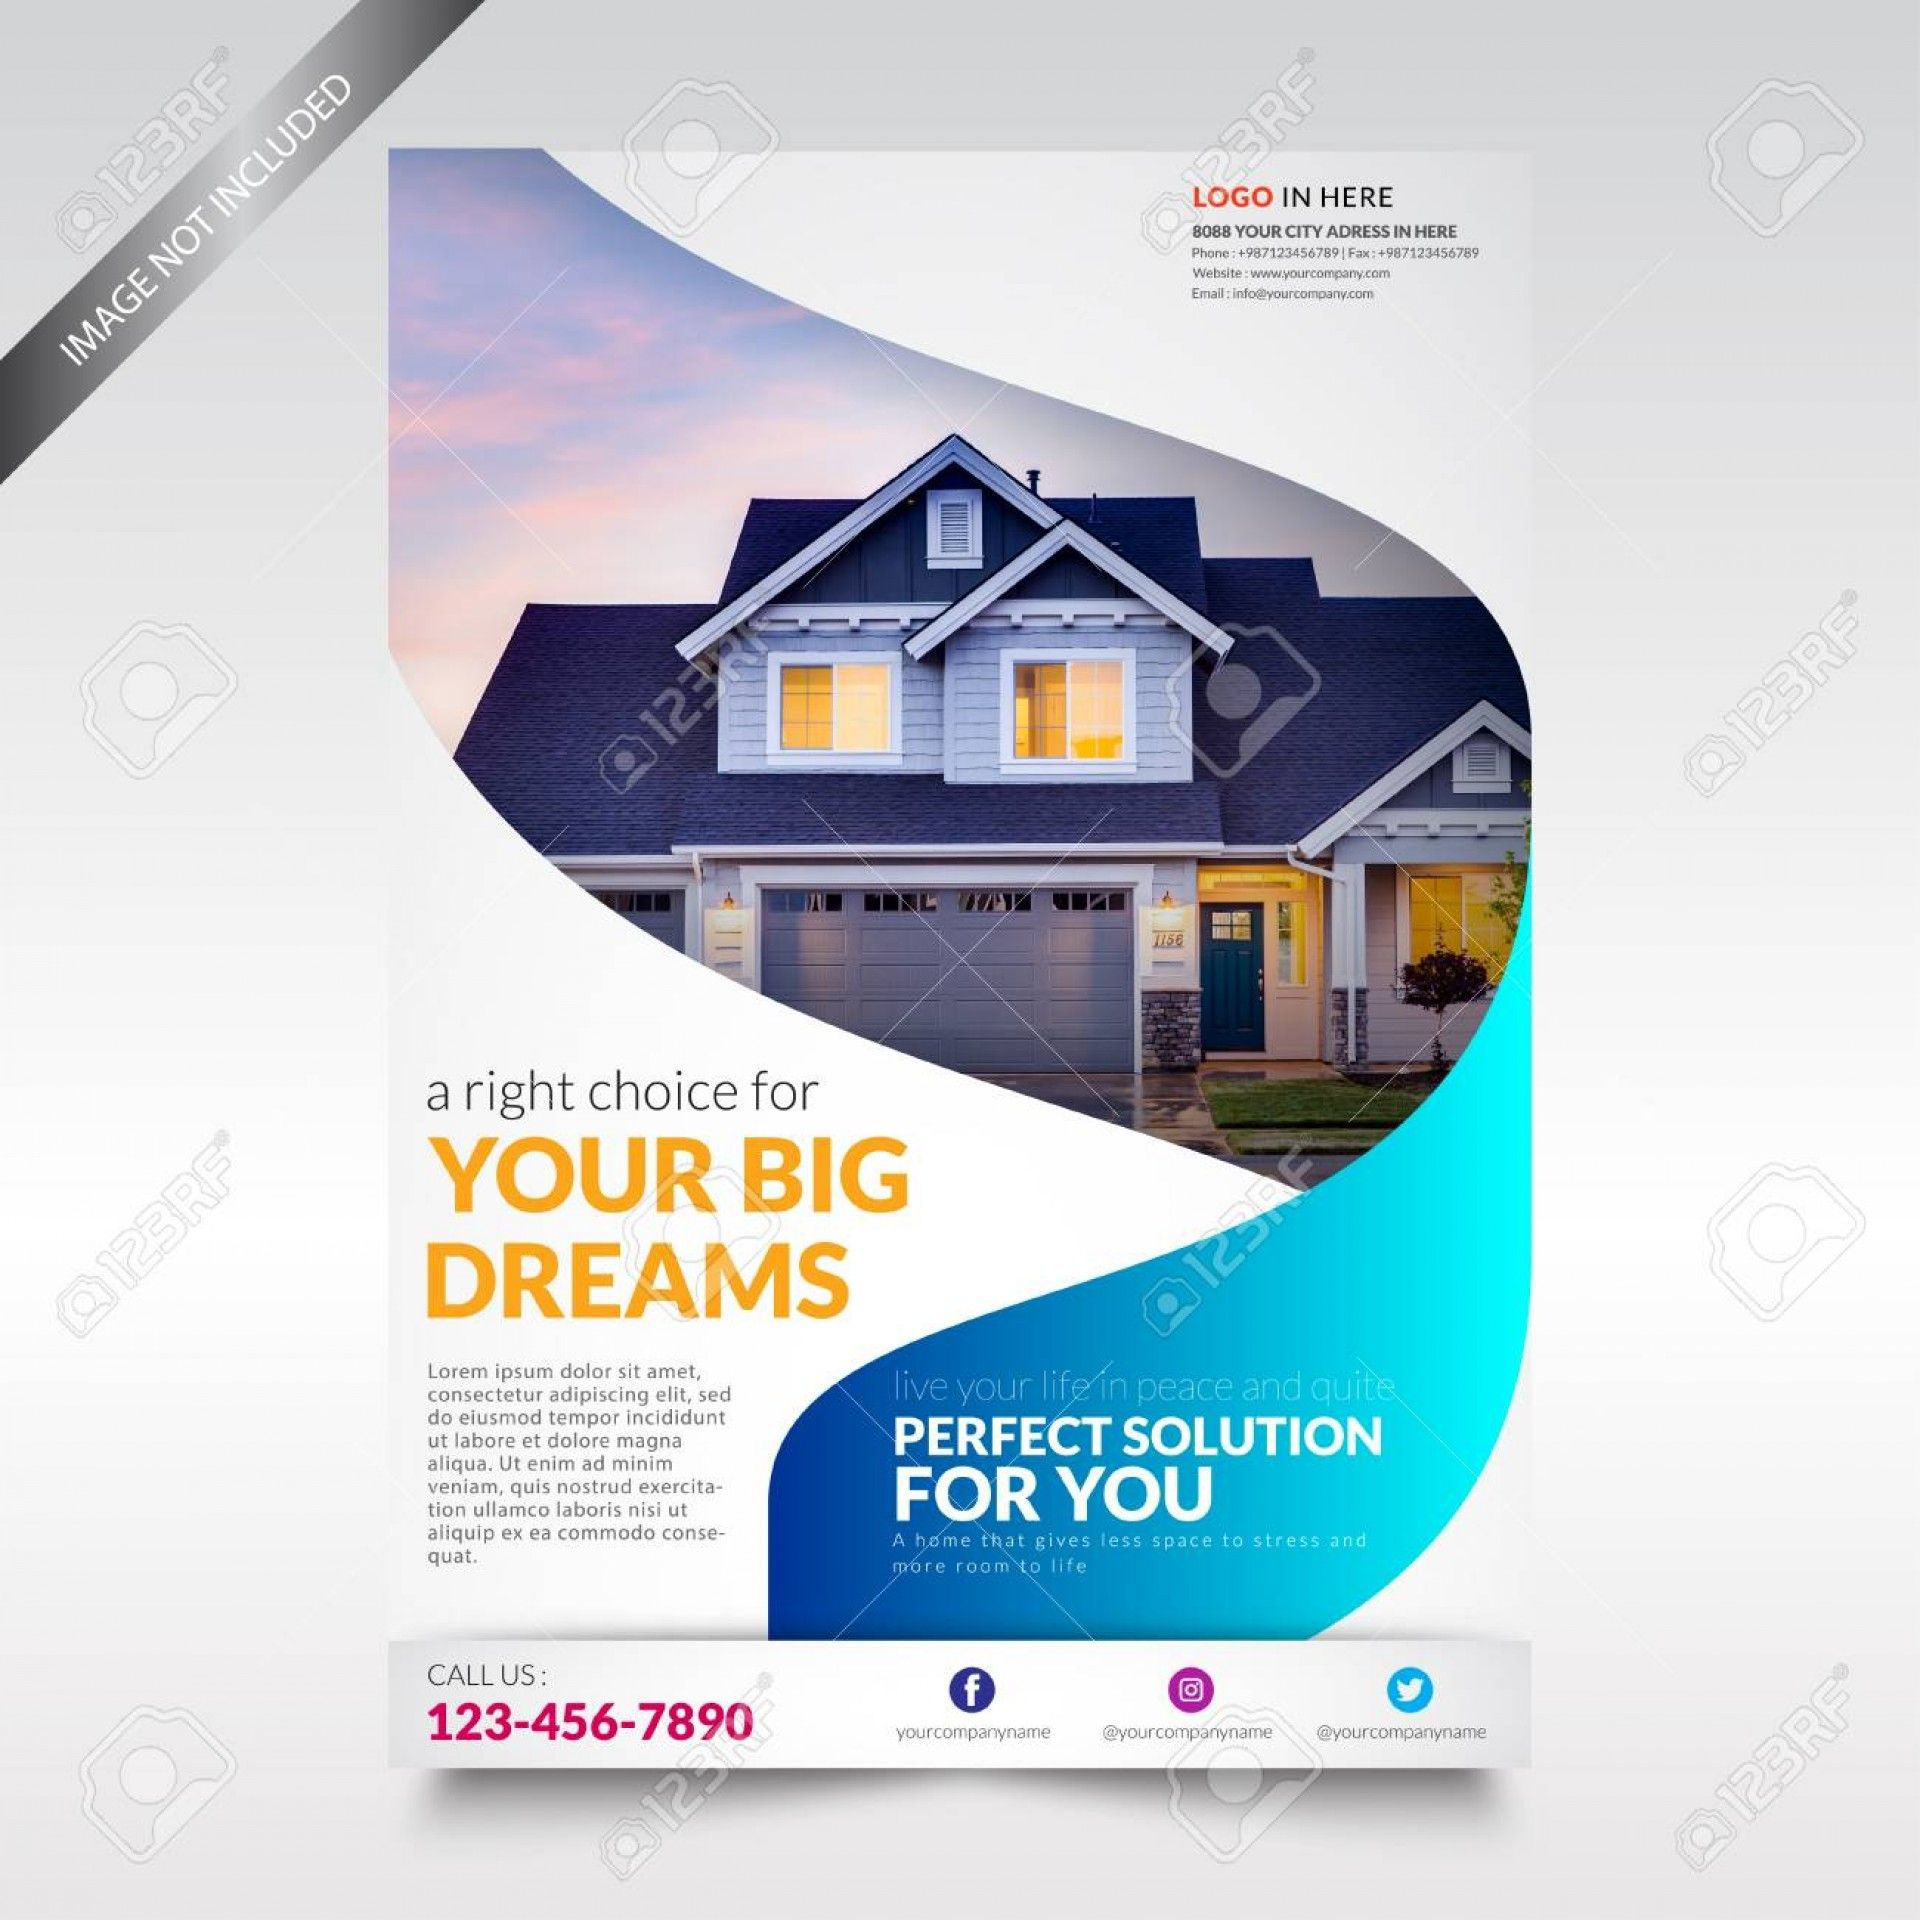 002 Awful Free Flyer Design Template Image  Templates Online Download PsdFull